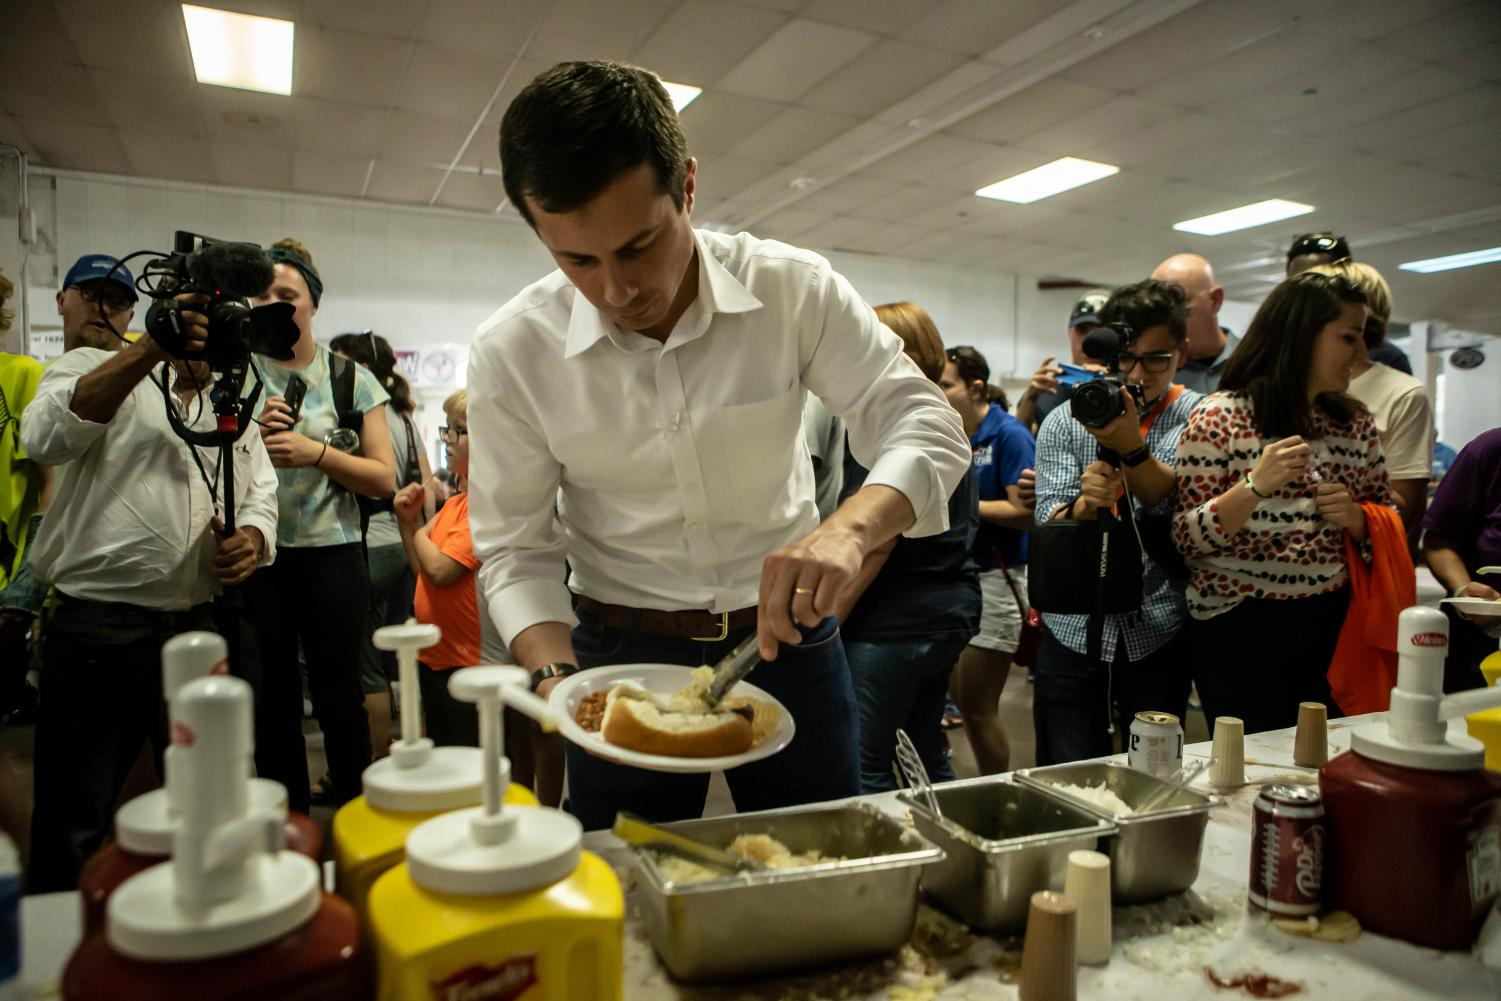 Mayor+Pete+Buttigieg+fills+his+plate+during+the+Hawkeye+Area+Labor+Council+Picnic+at+Hawkeye+Downs+on+Monday%2C+September+2%2C+2019.+